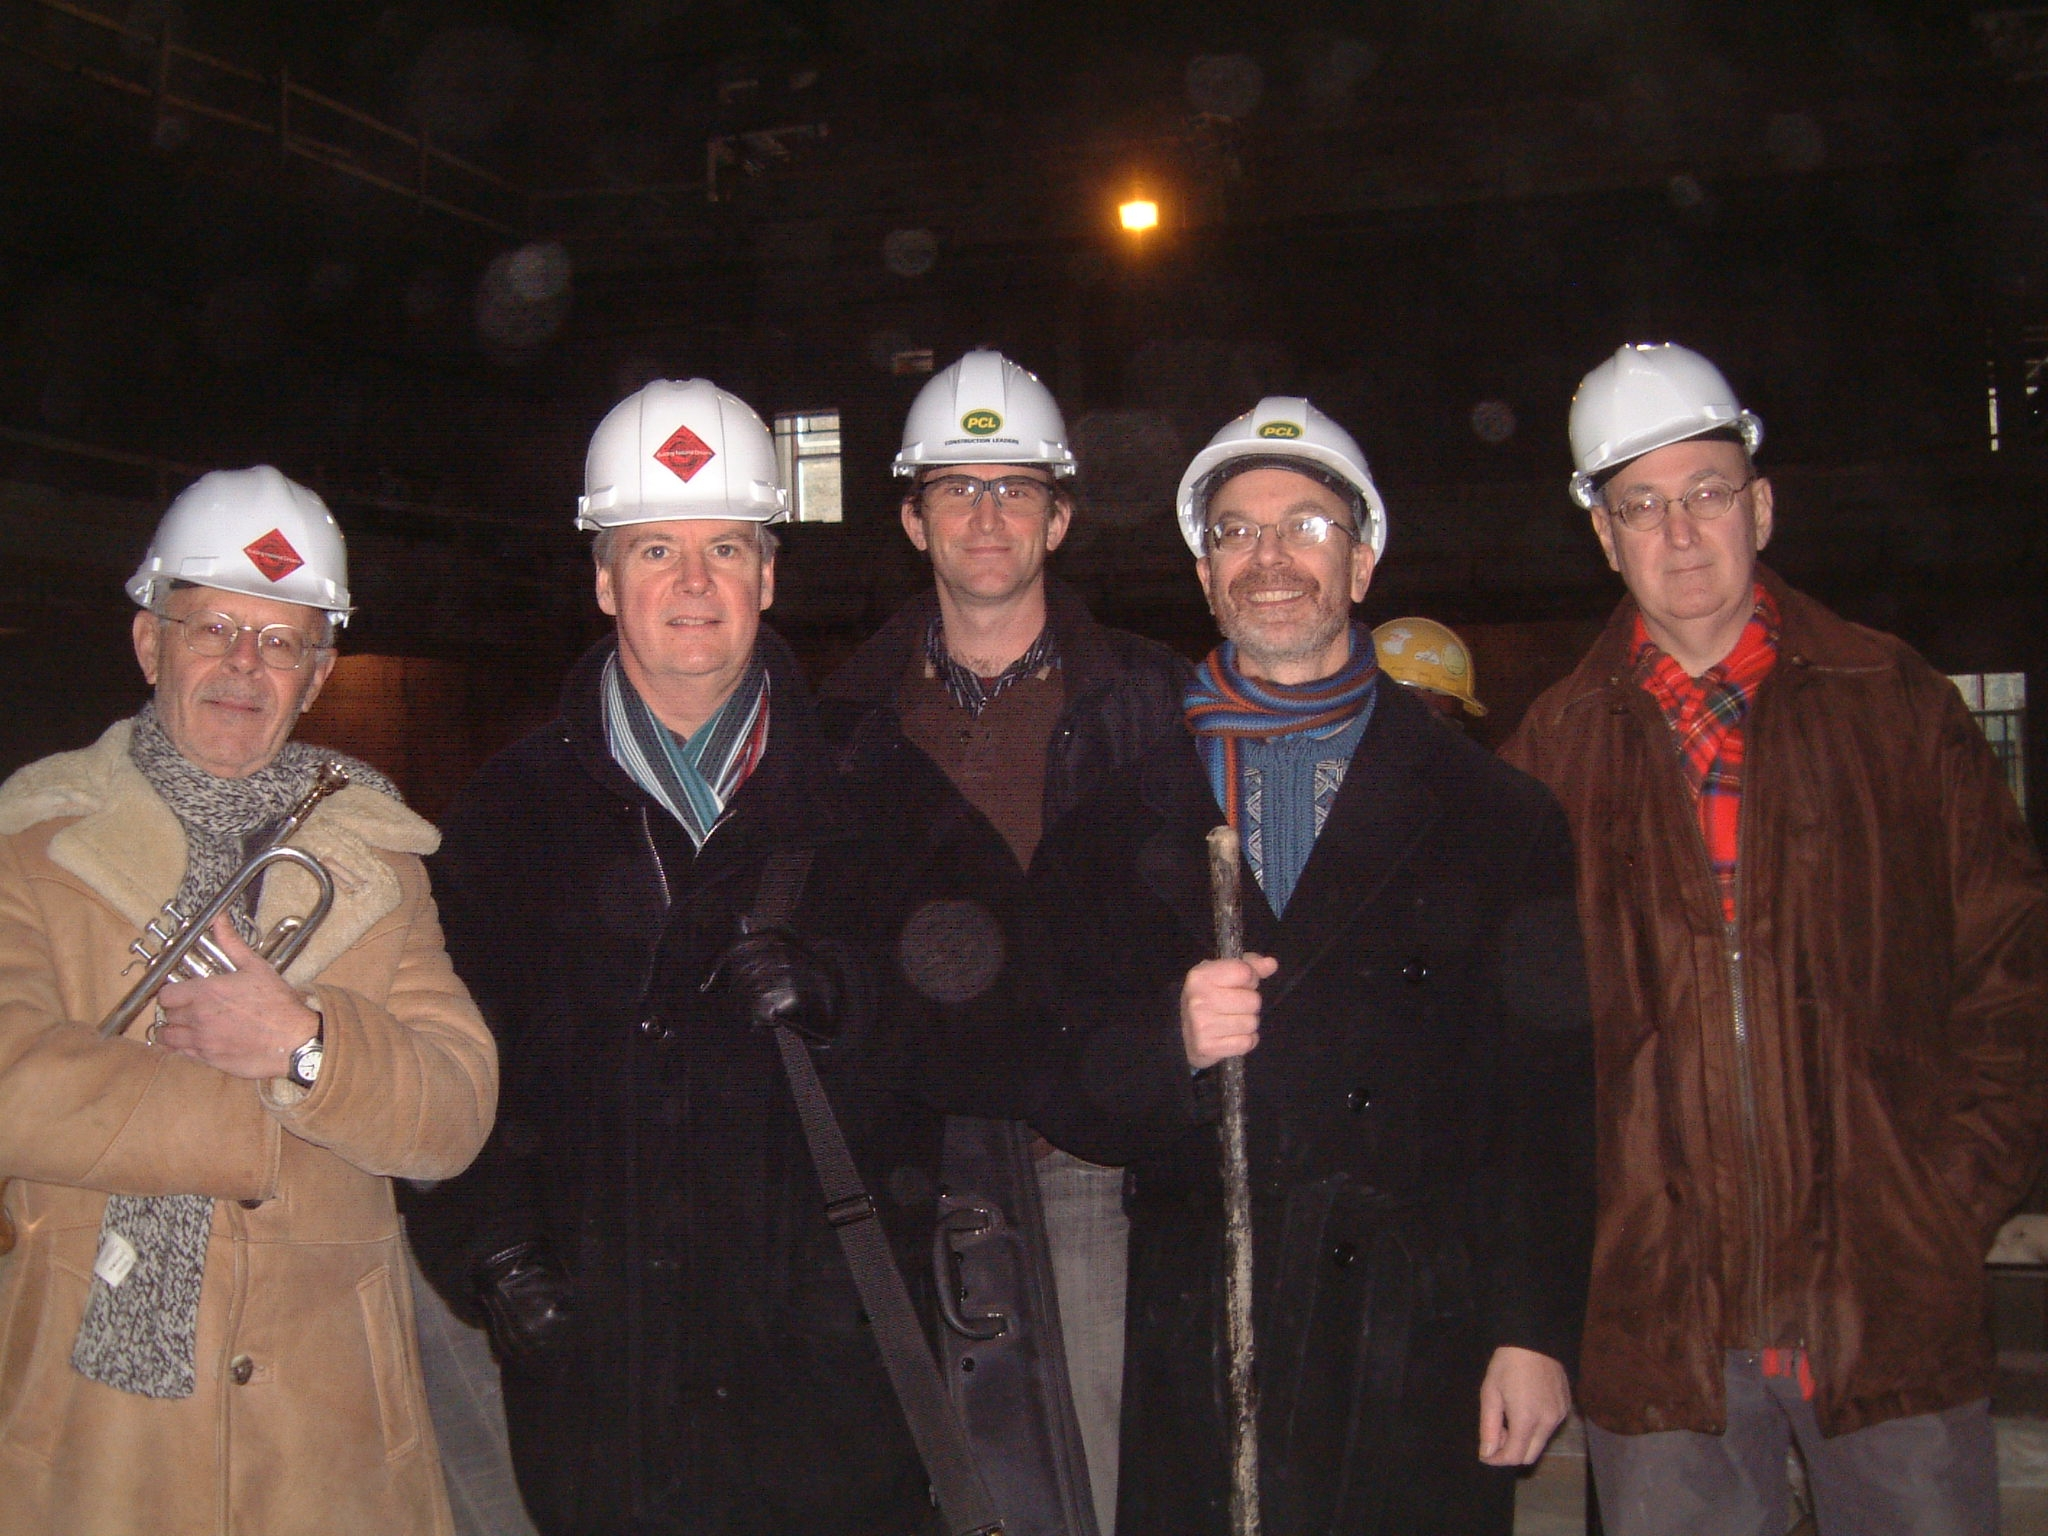 hard-hat-concert-january-07.JPG